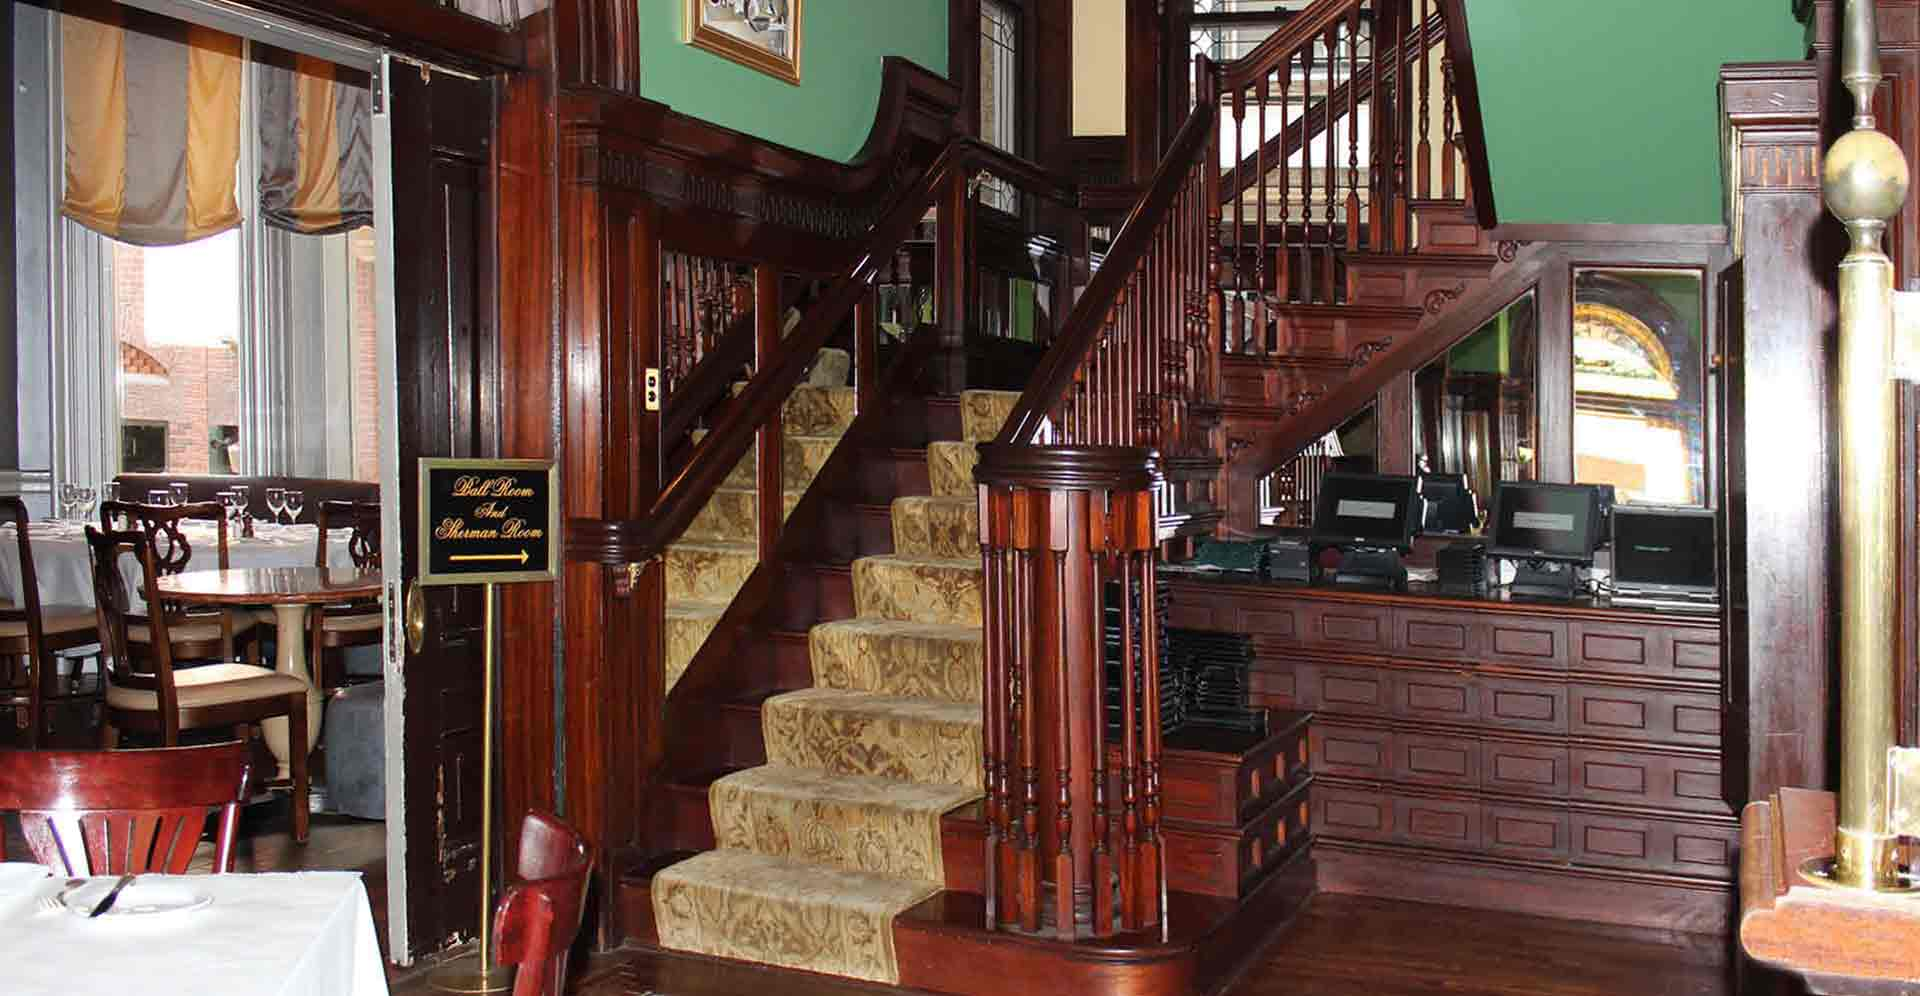 UNION LEAGUE CAFE NEW-SECOND FLOOR STAIRCASE